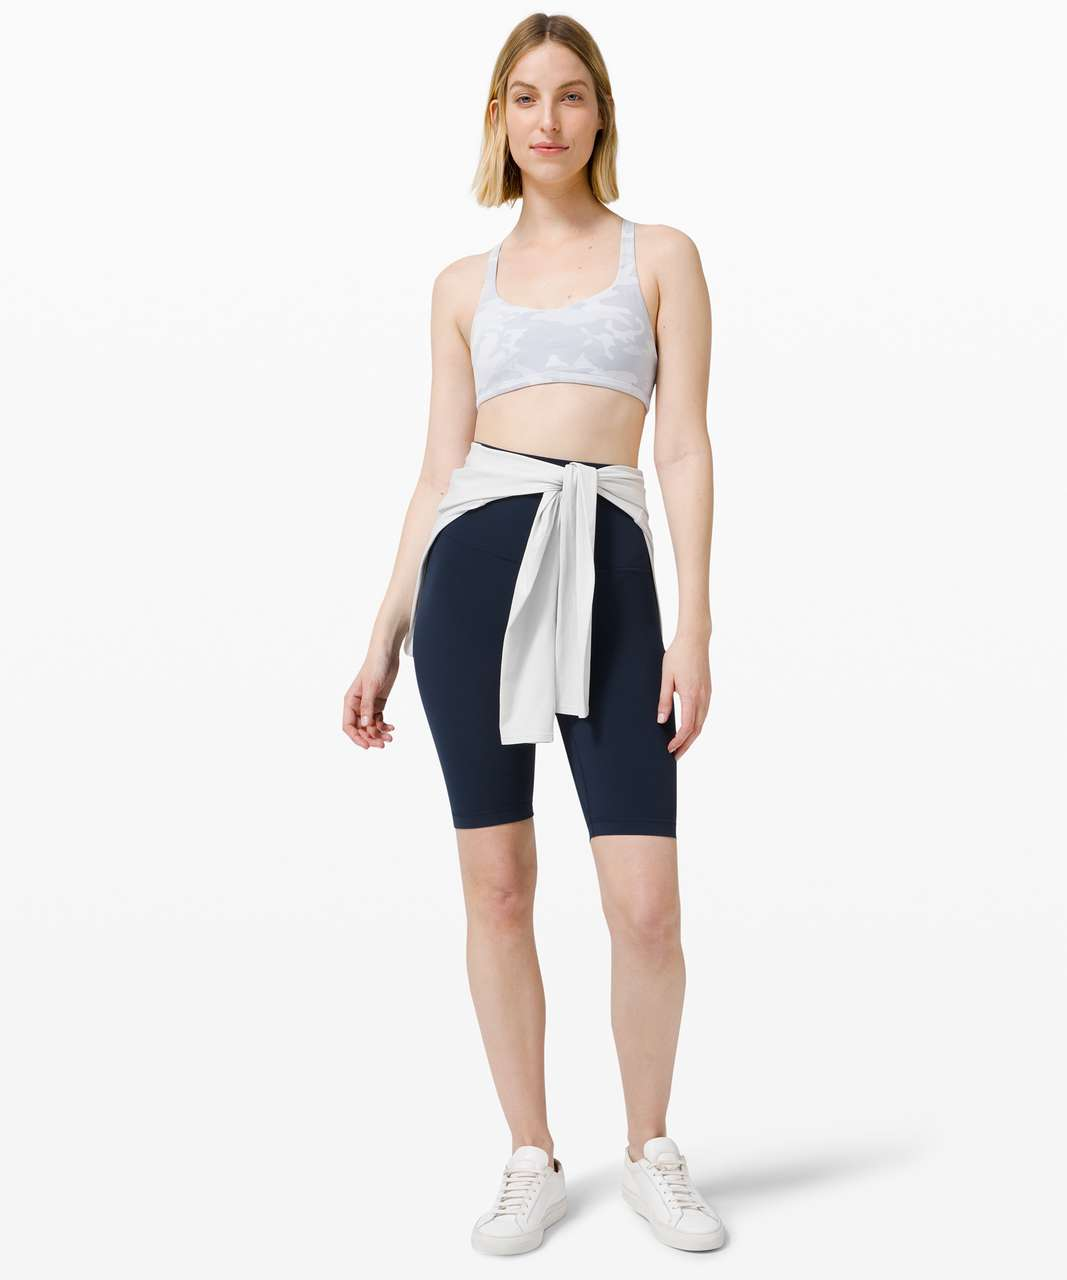 Lululemon Free To Be Bra Wild *Light Support, A/B Cup - Incognito Camo Jacquard Alpine White Starlight / White